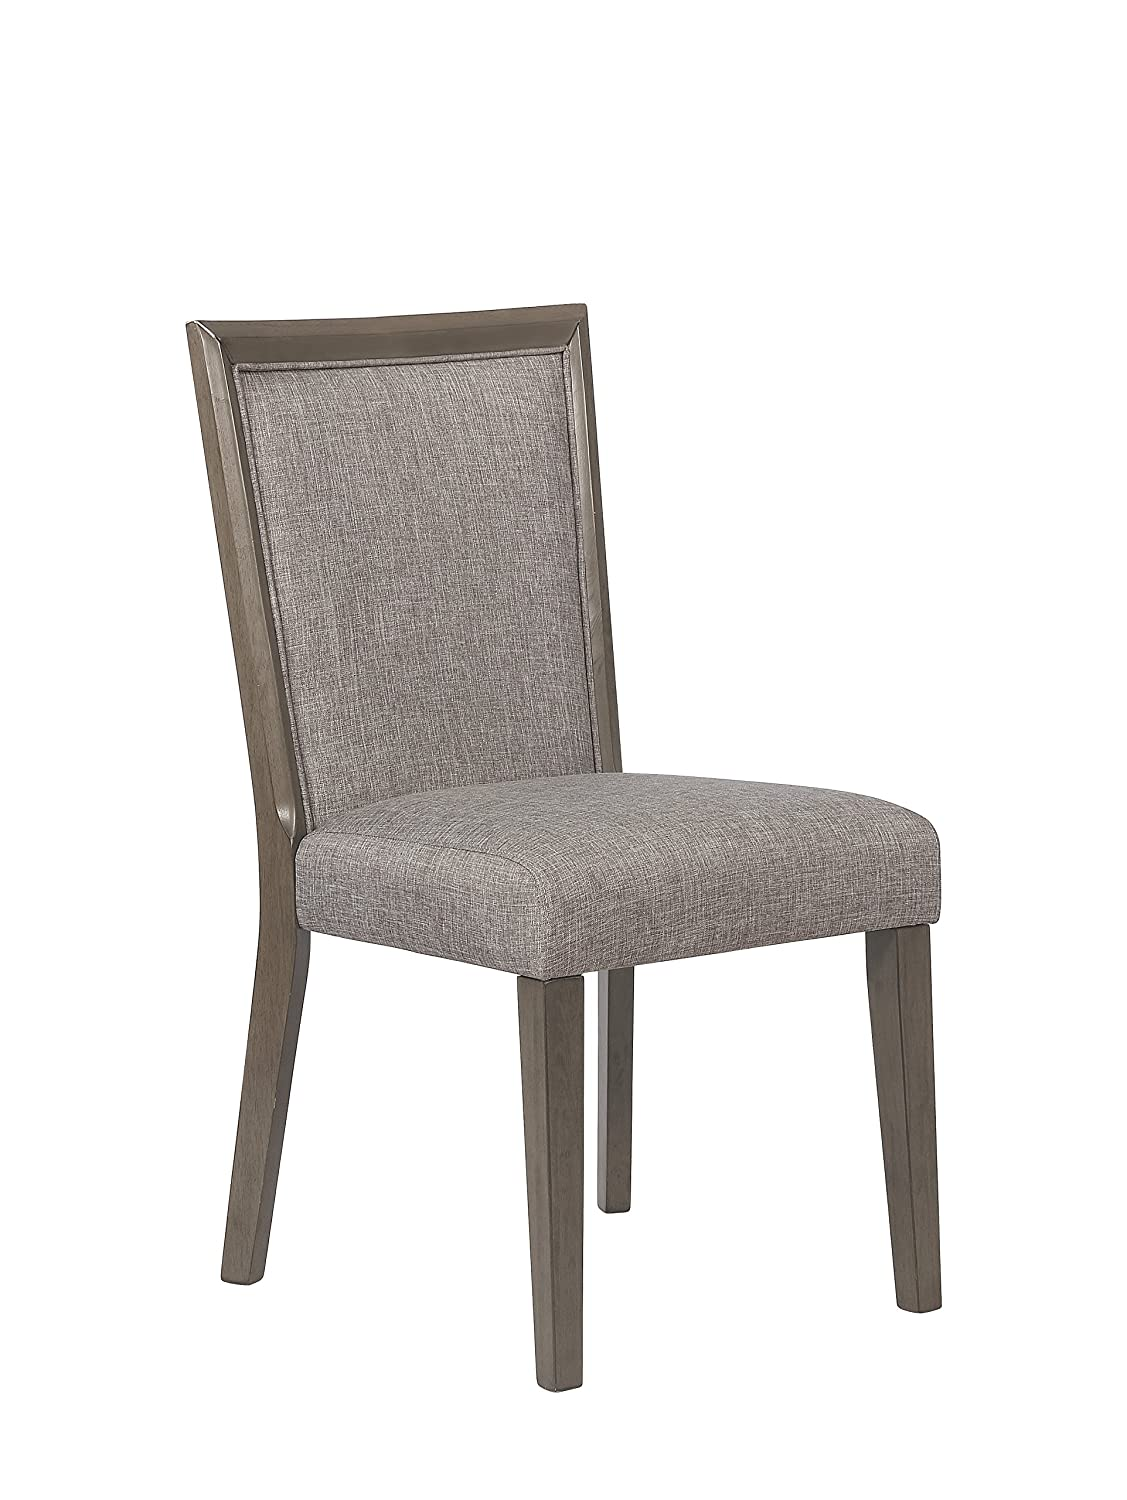 Powell PAMZN1492 Fordham Chair Espresso